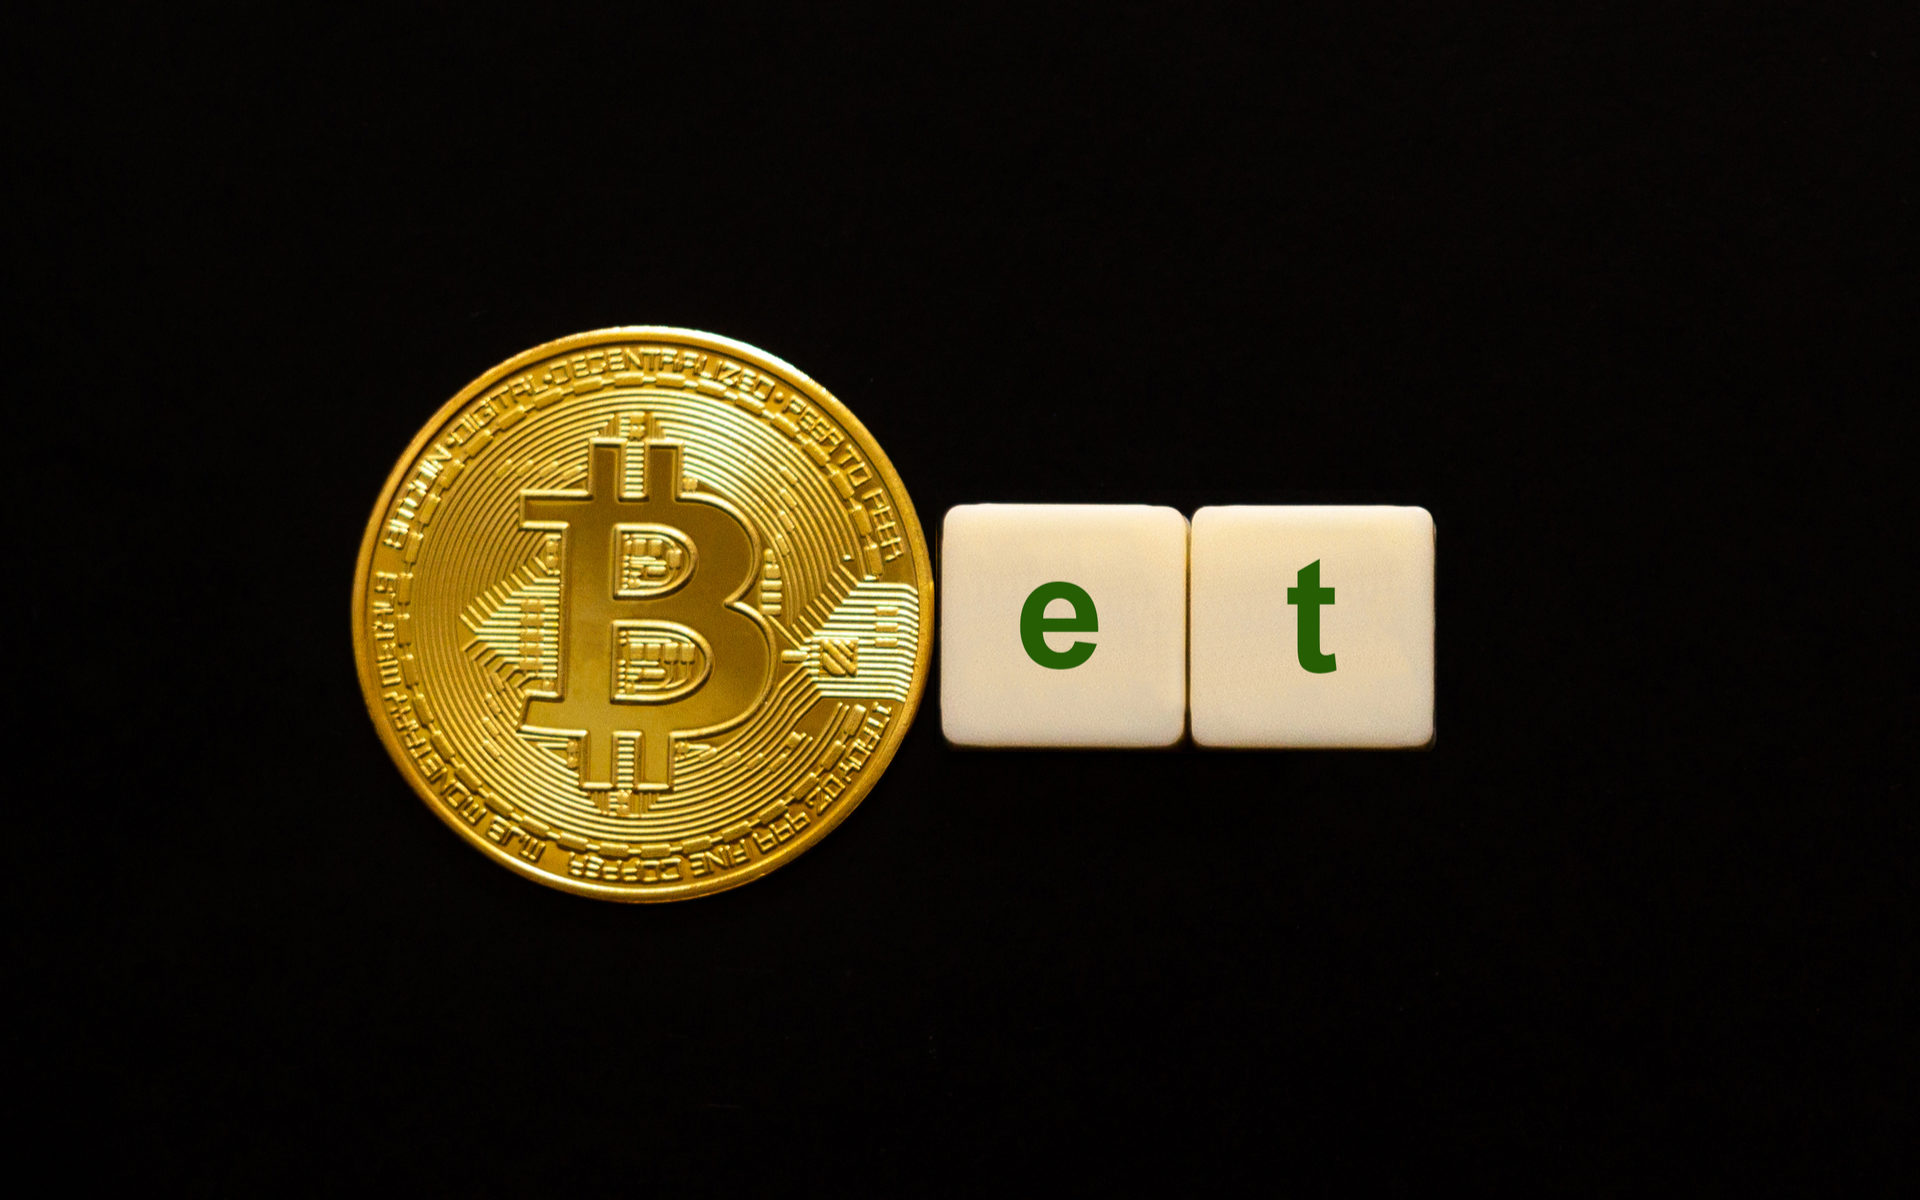 bet on craig wright not moving bitcoin